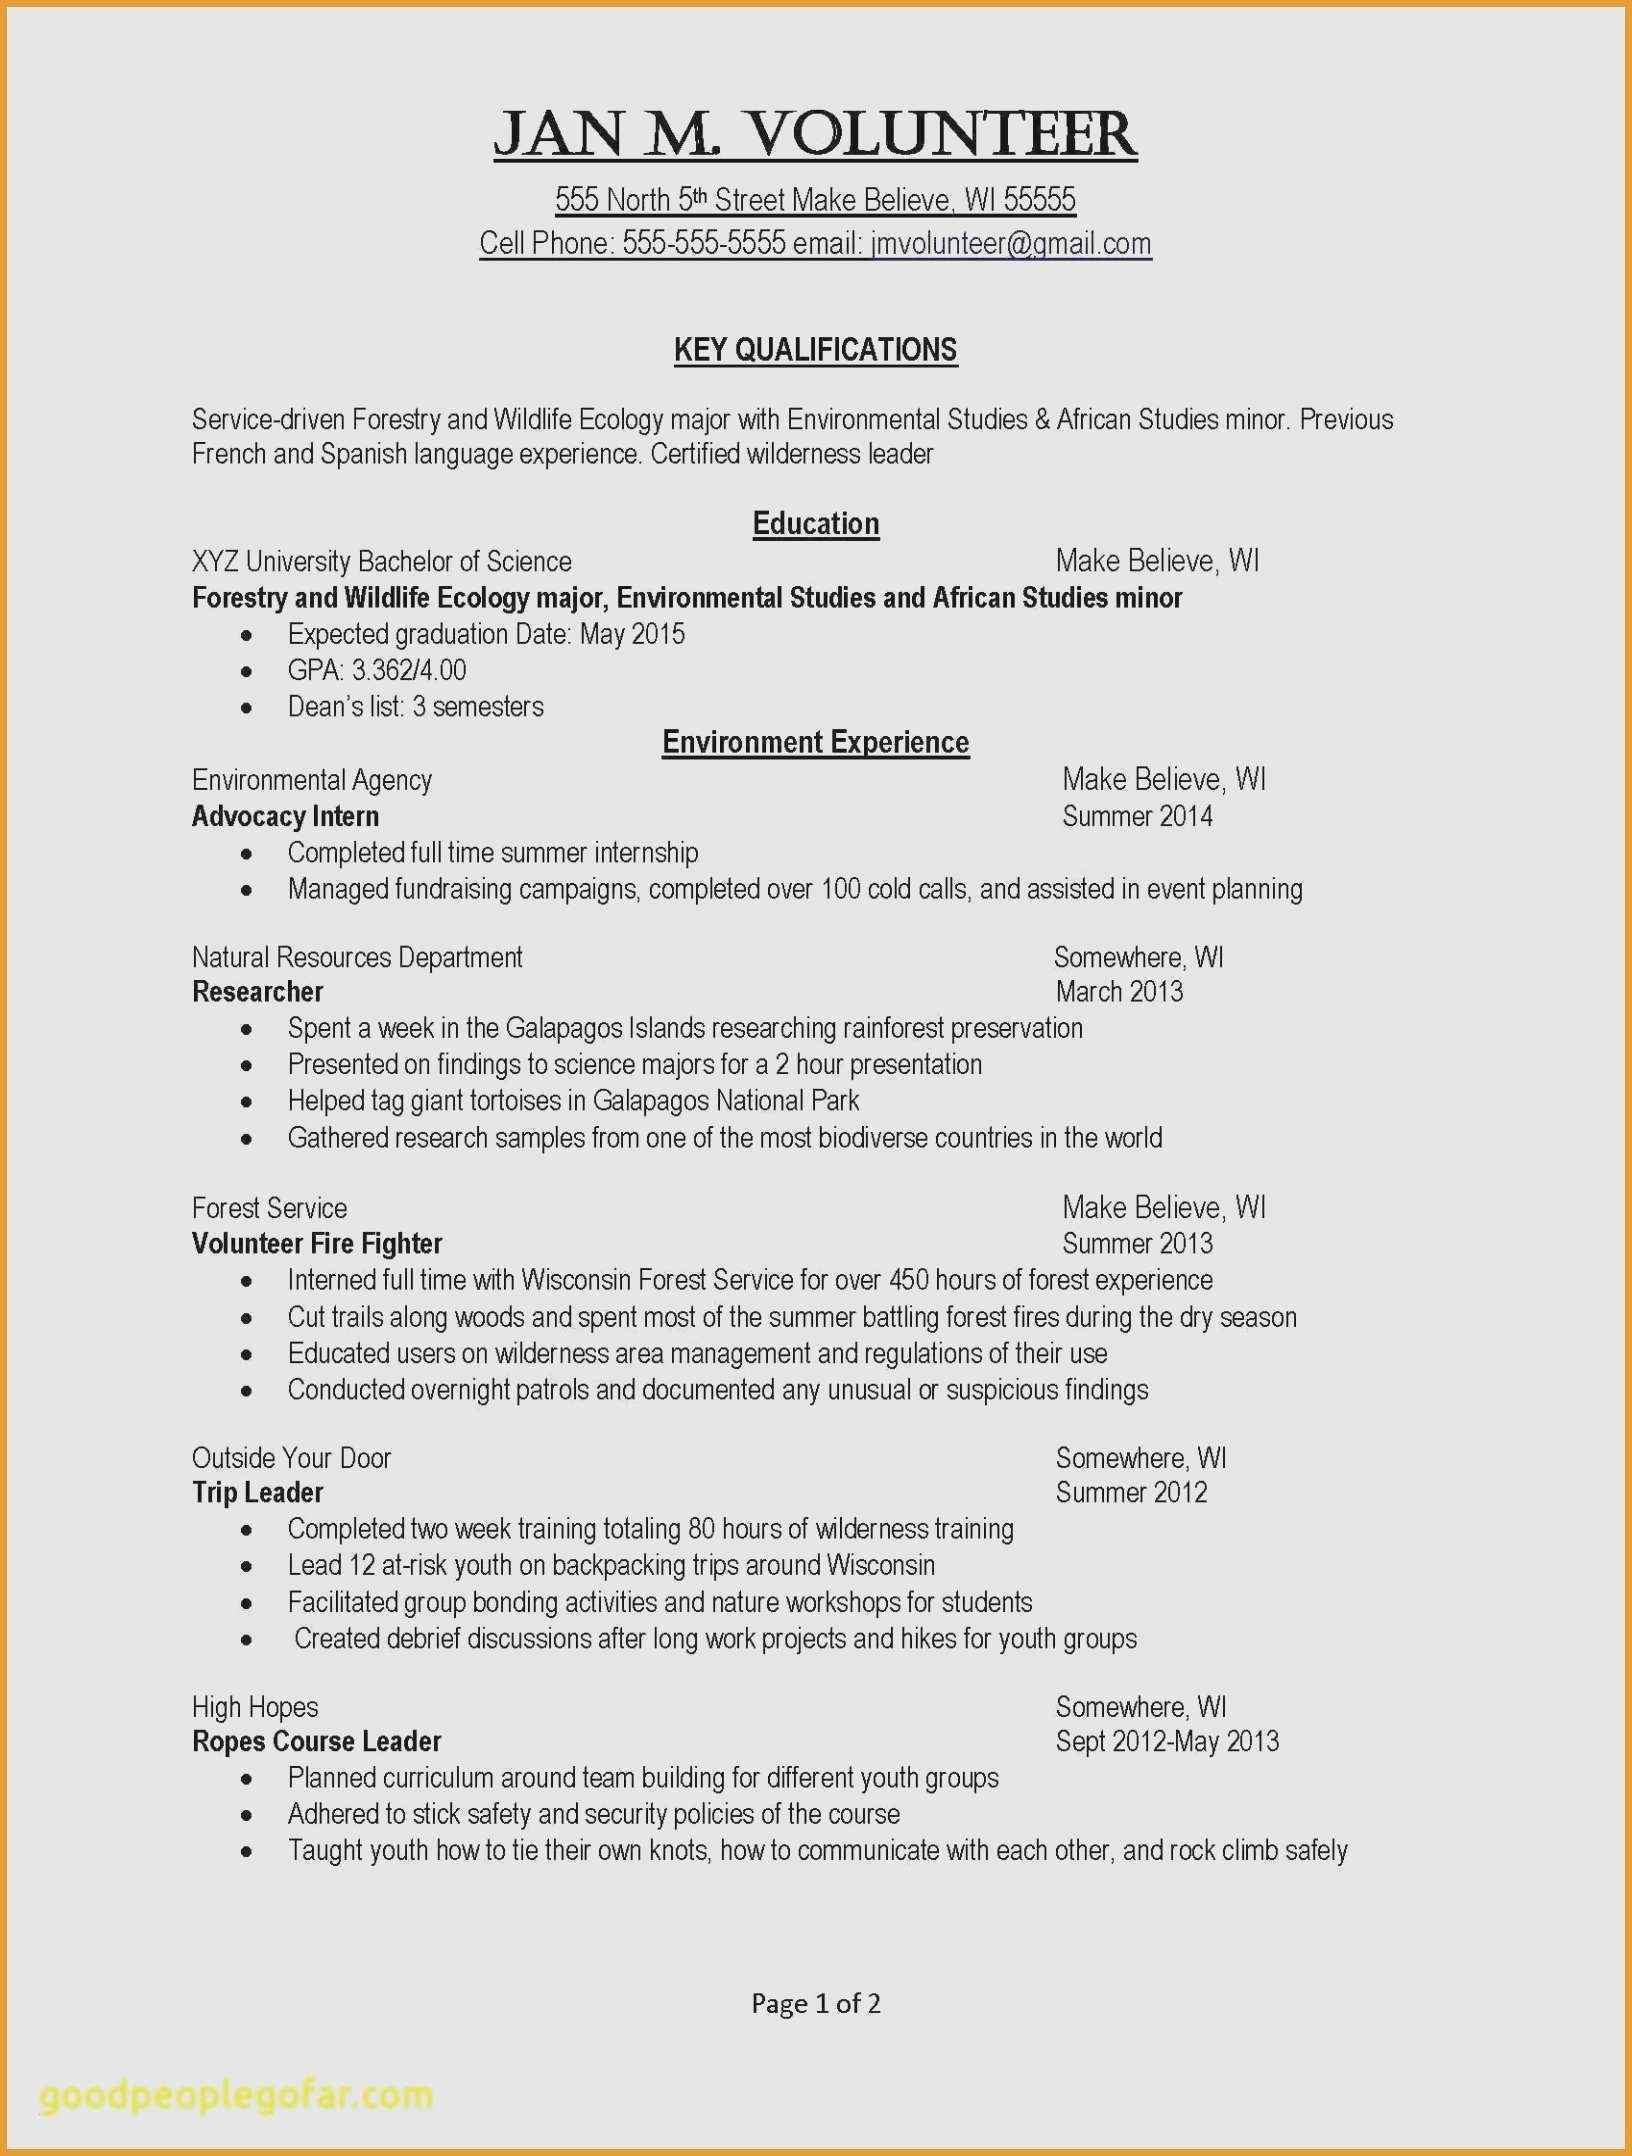 ub resume template Collection-Ub04 Sample Claim form Unique Fice Resume Templates Awesome Skills Resume Template 9-q